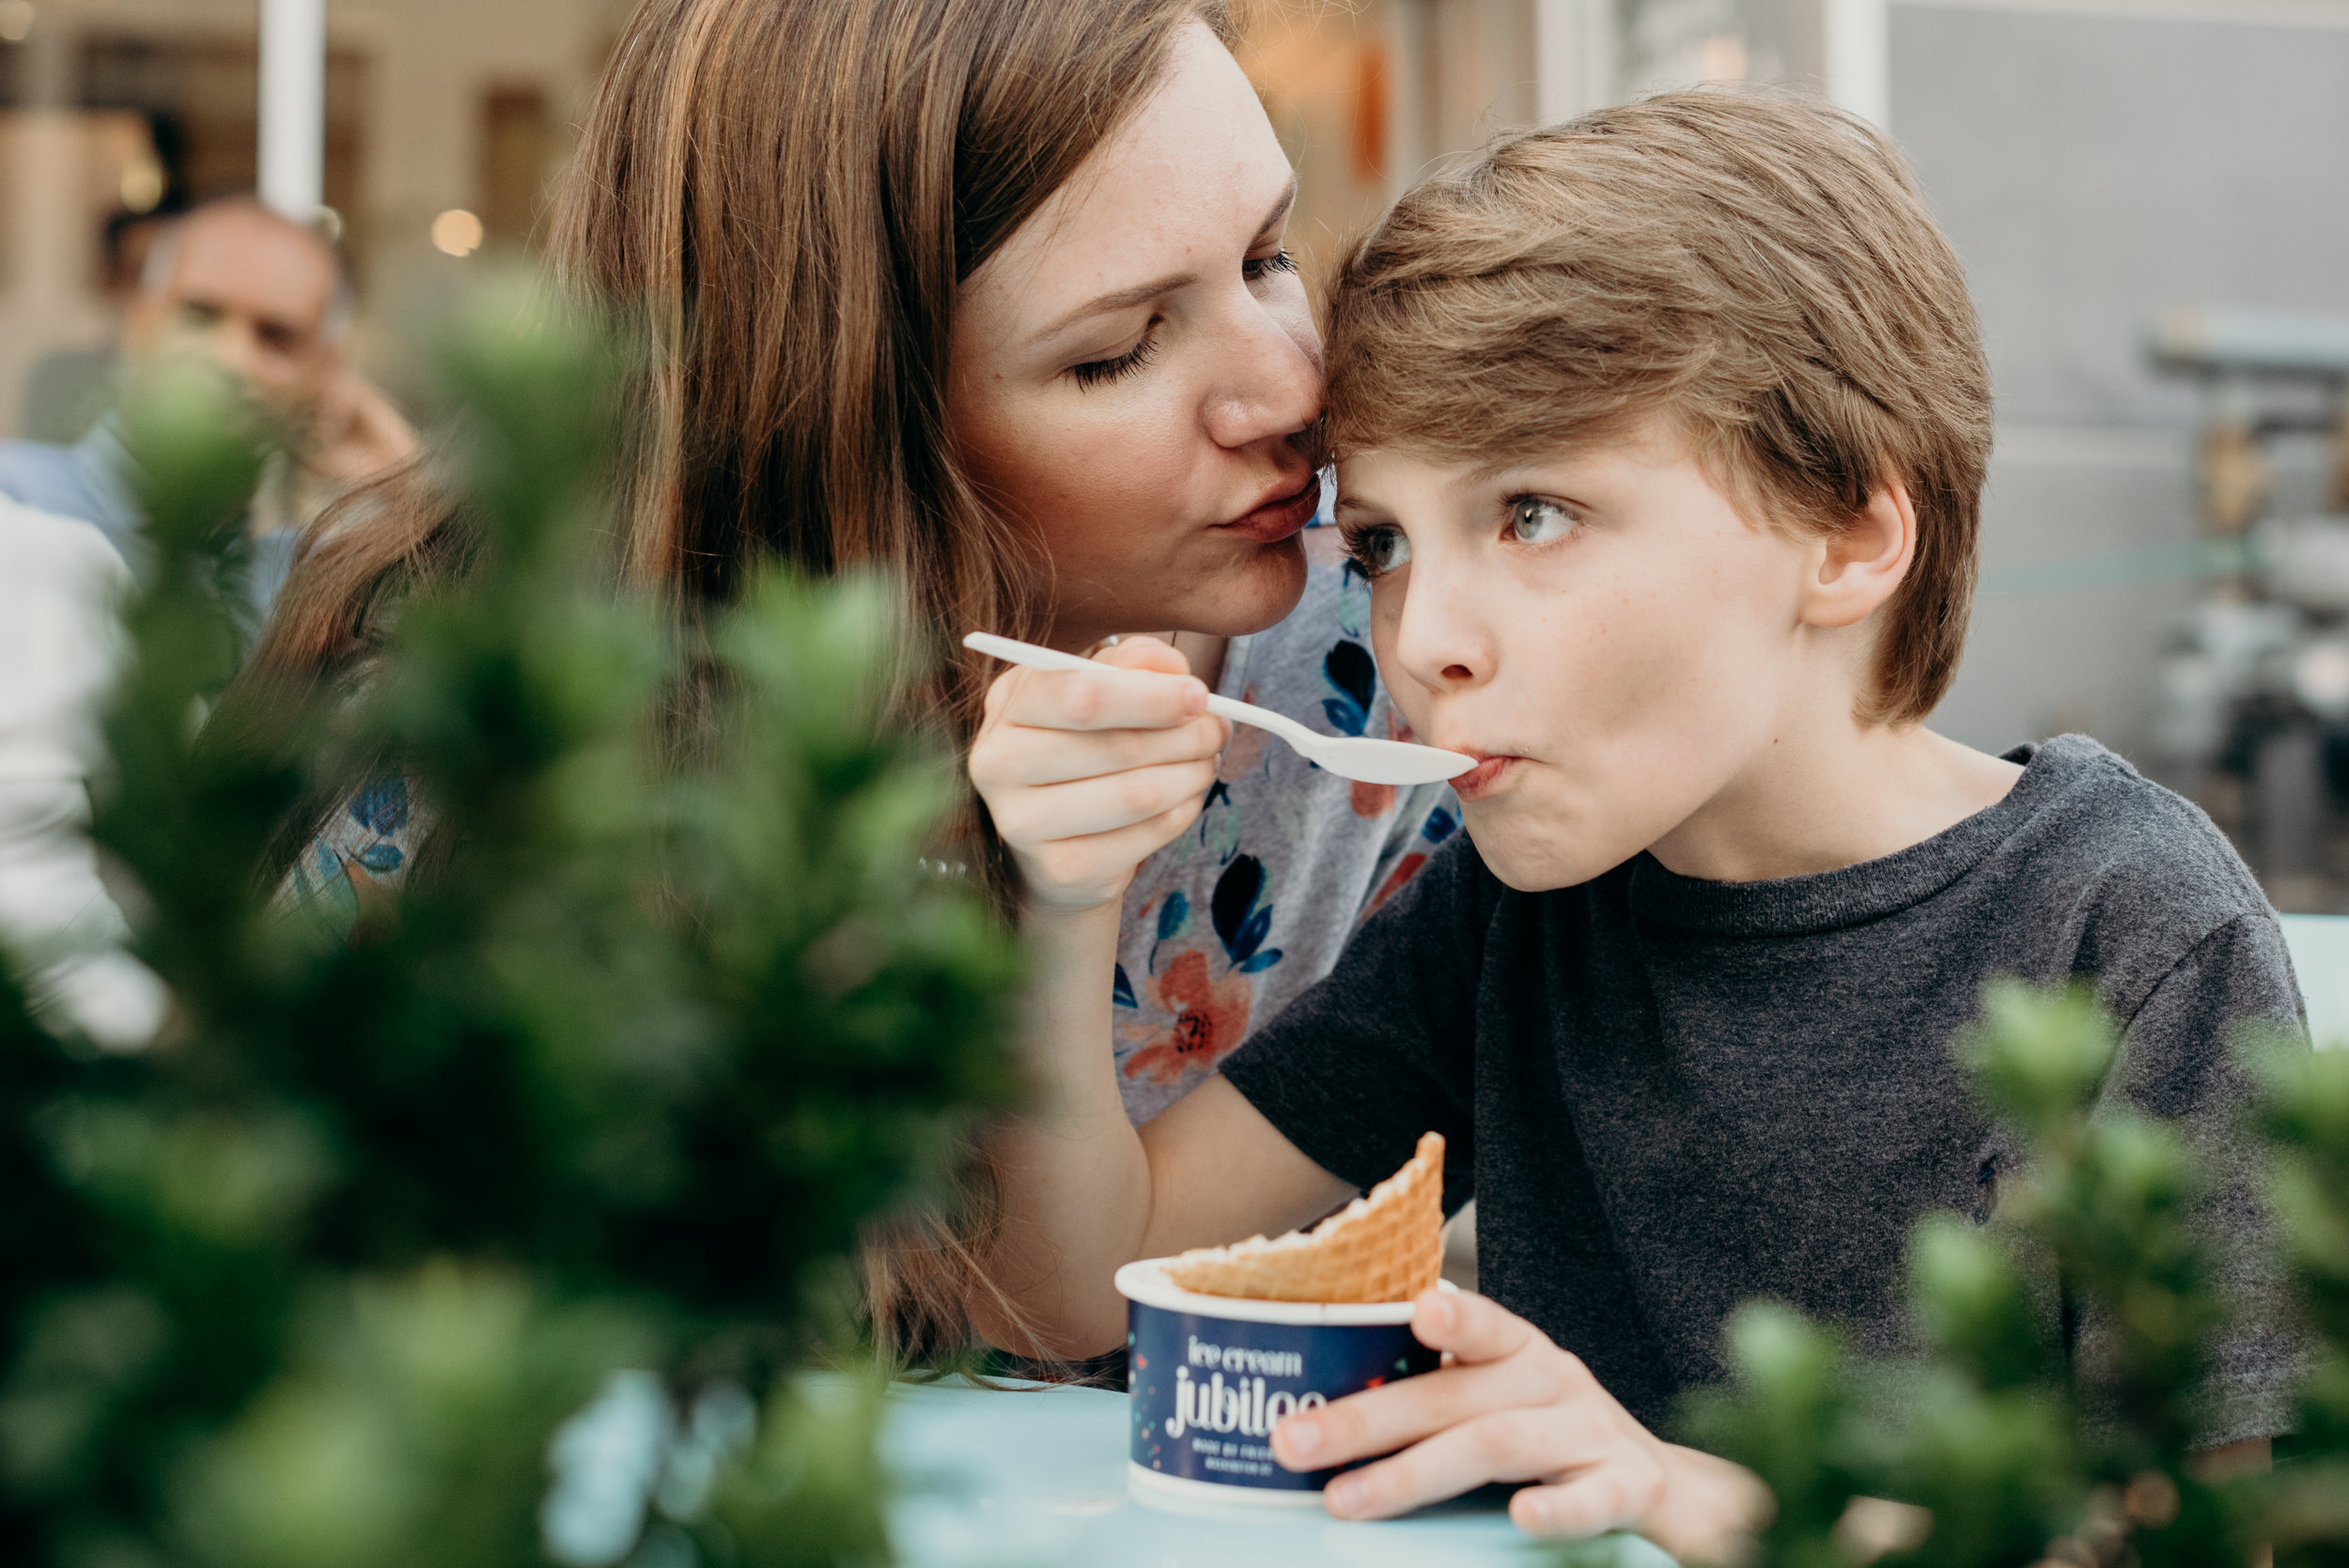 mother-son-ice-cream-date-best-family-photographer-washington-dc-lifestyle8.jpg